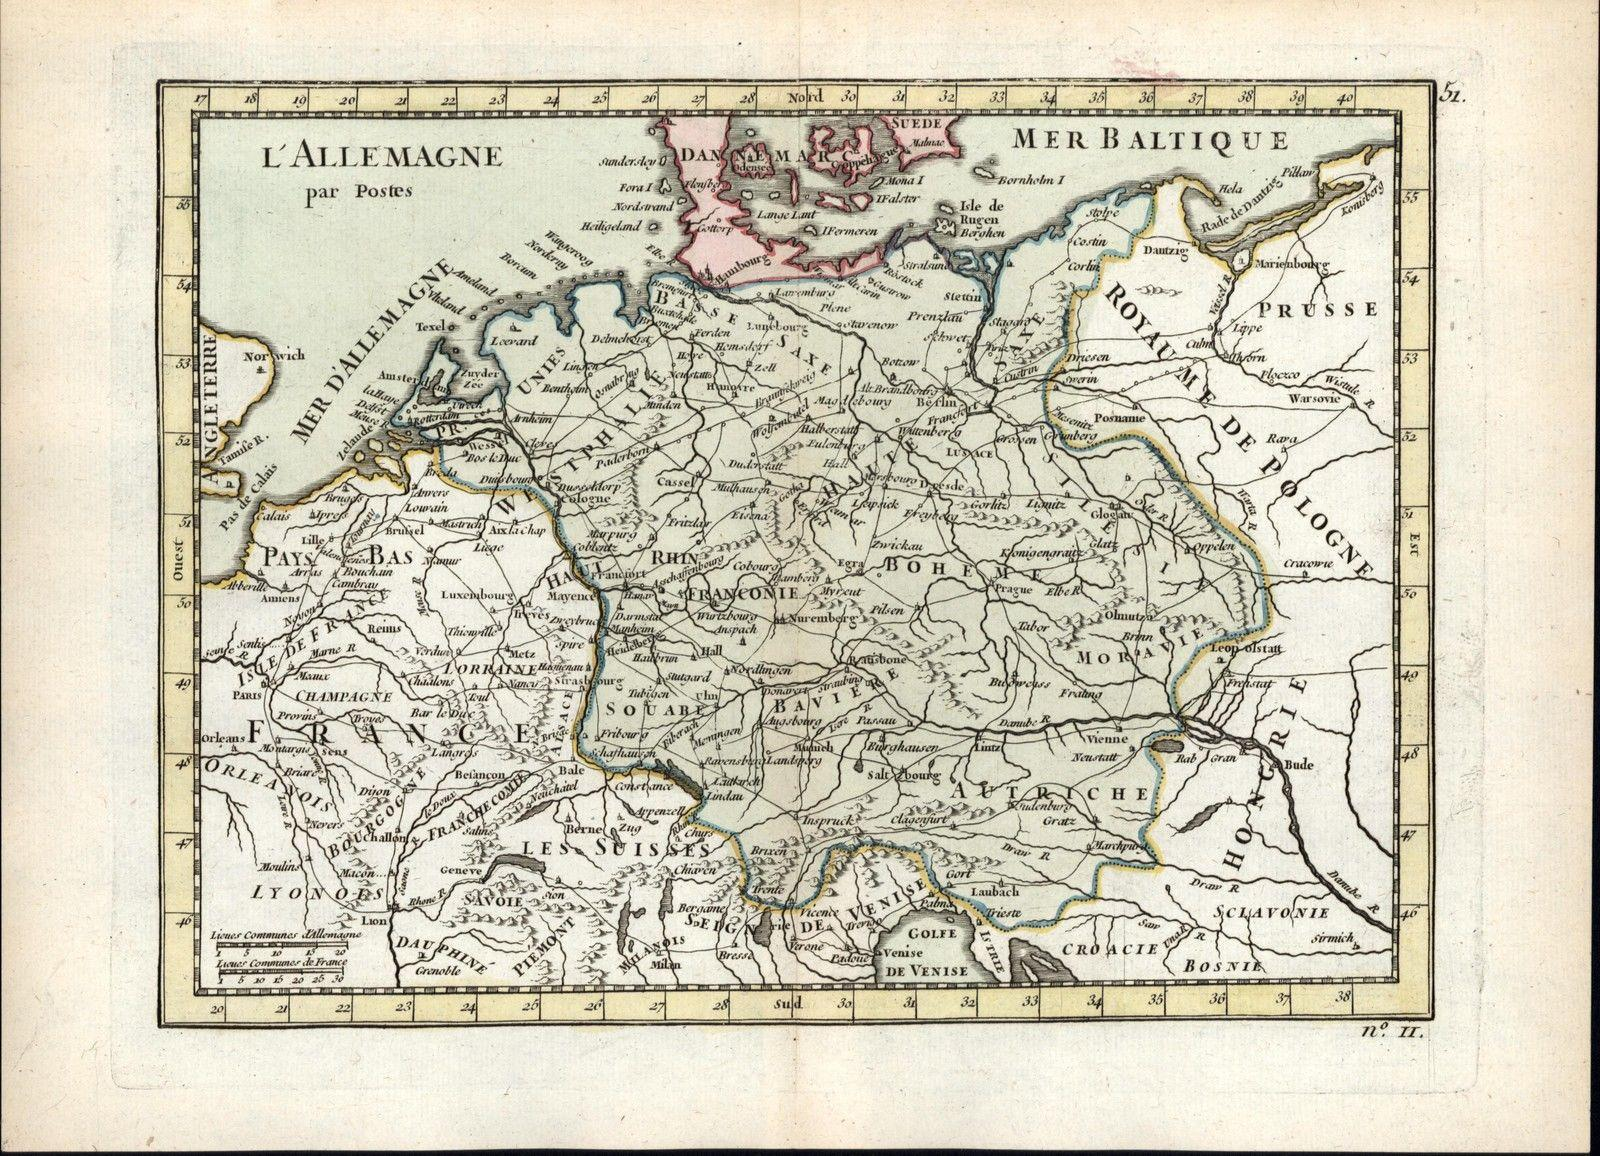 Map Of Old Germany.Germany Postal Map German Offices Routes Of Travel 1768 Le Rouge Old